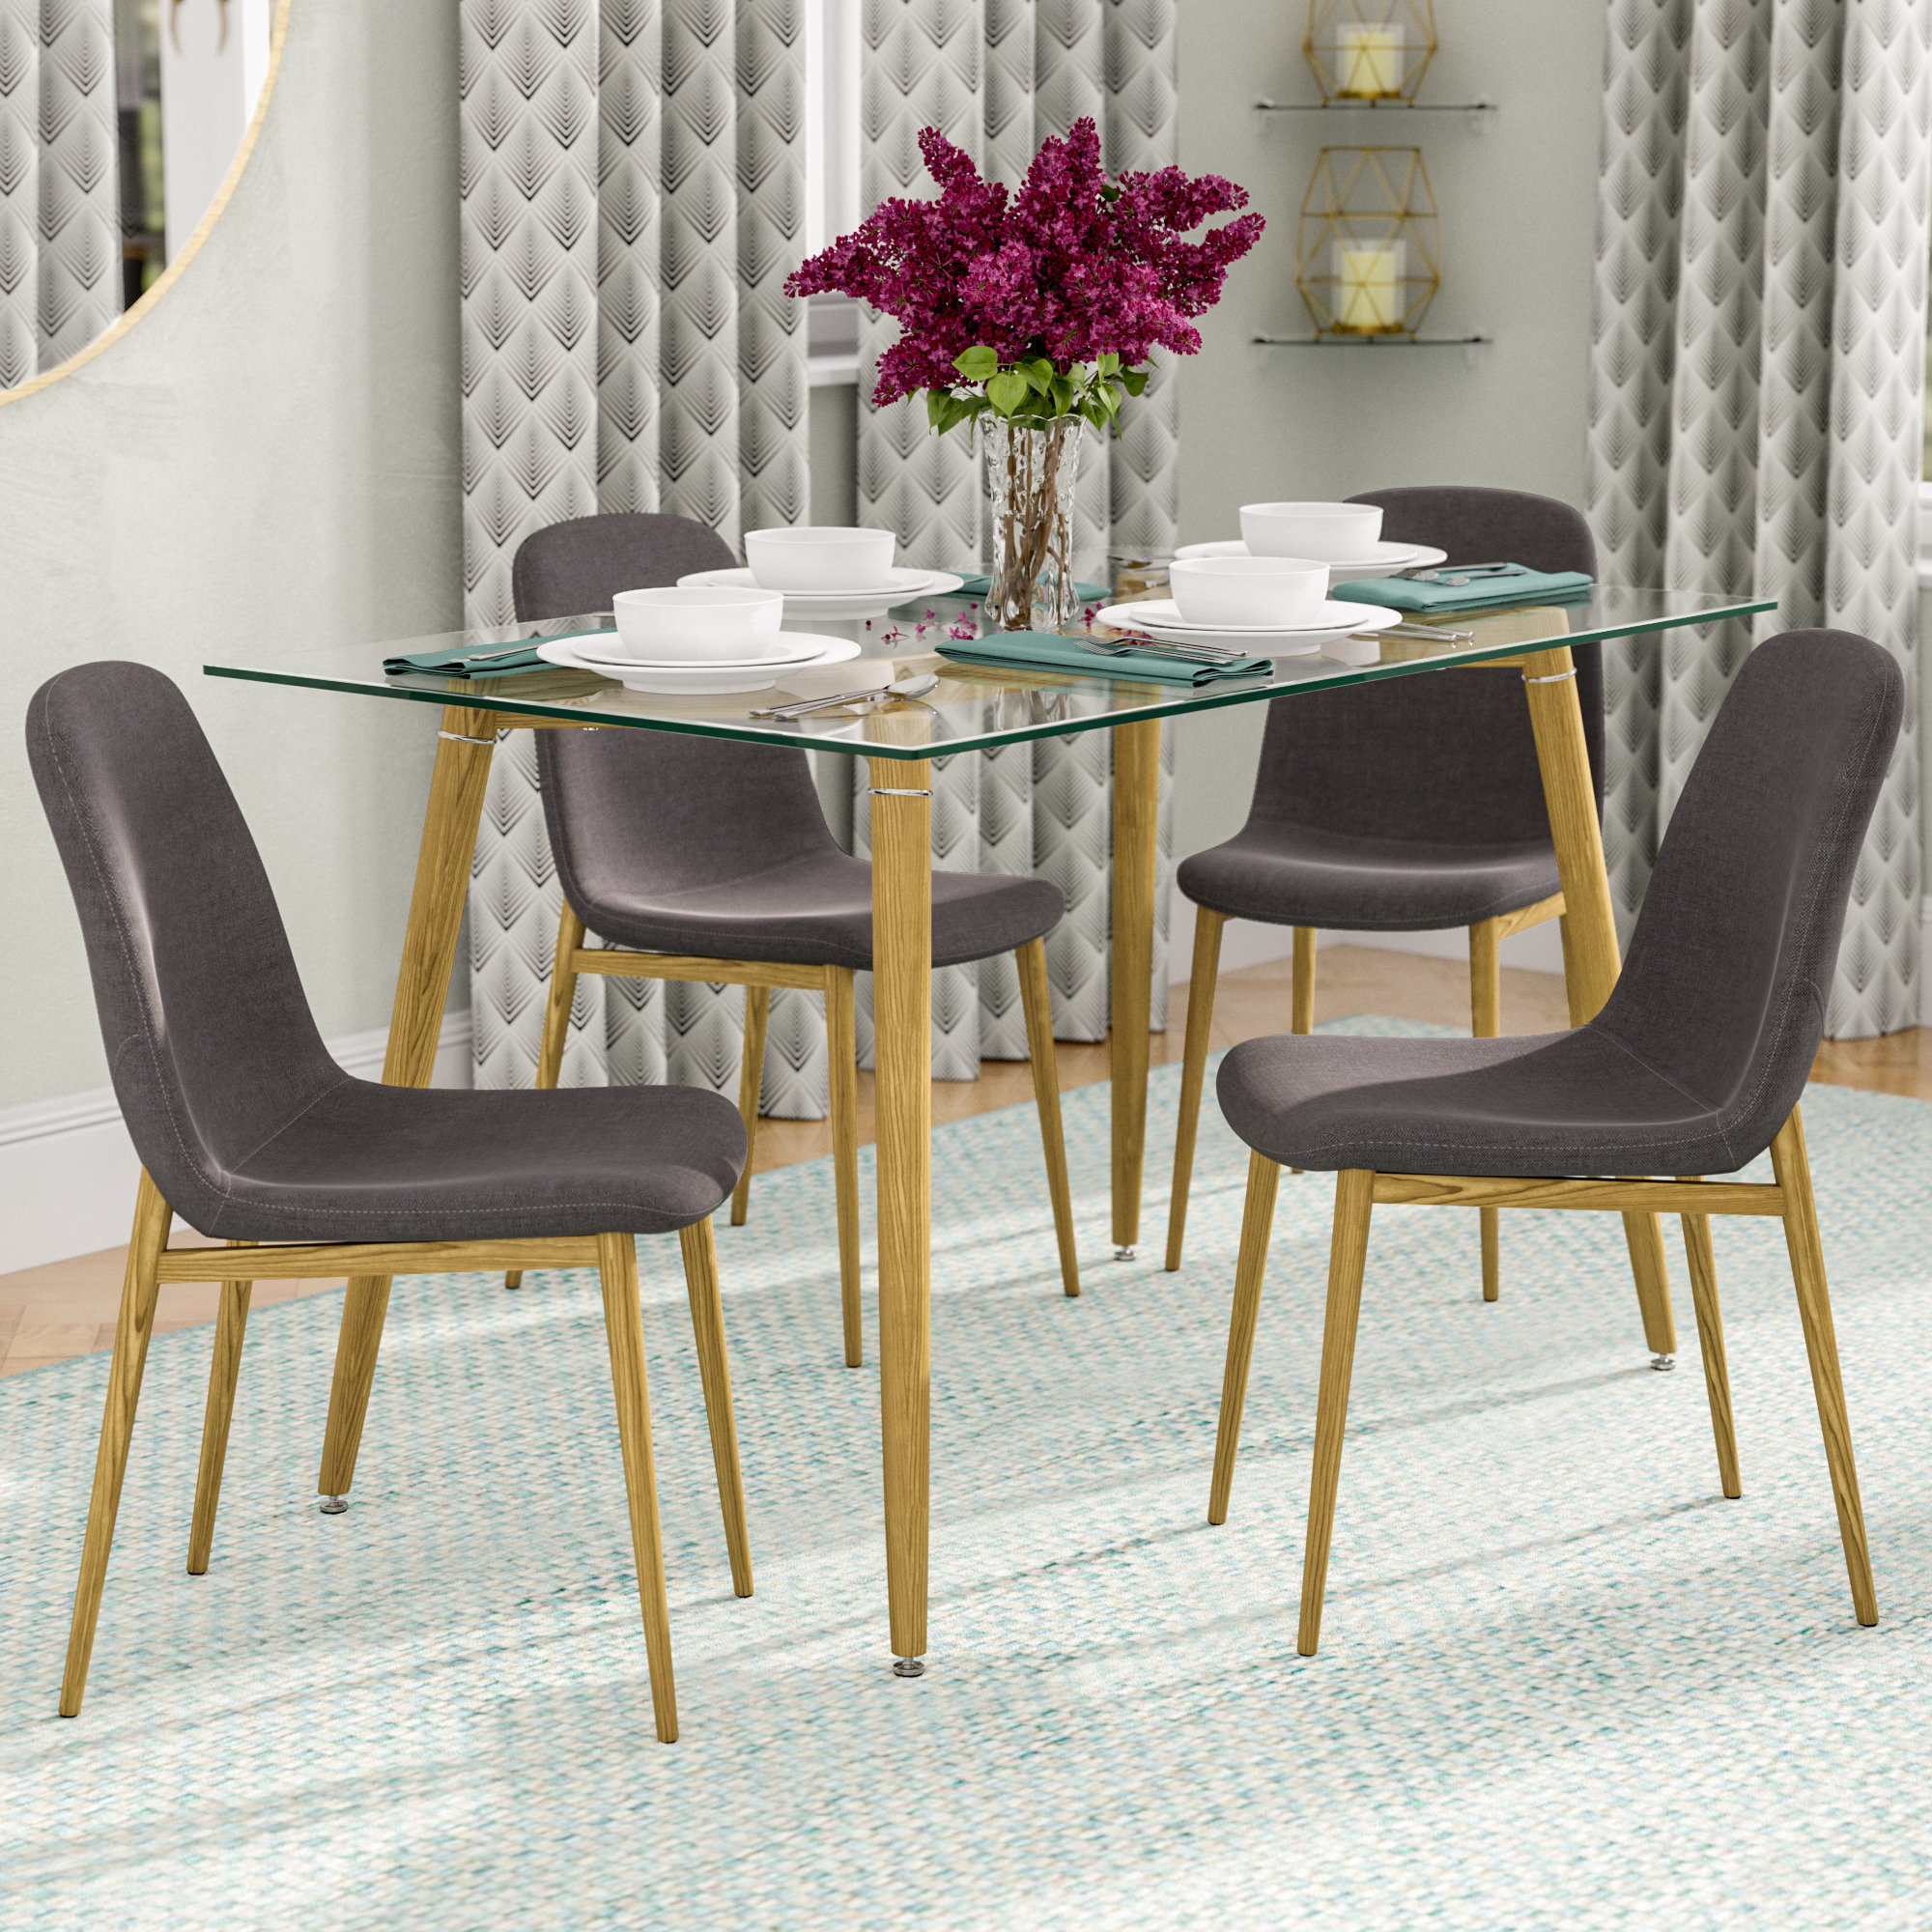 Goodman 5 Piece Dining Set Inside Most Recently Released Goodman 5 Piece Solid Wood Dining Sets (Set Of 5) (Image 9 of 20)